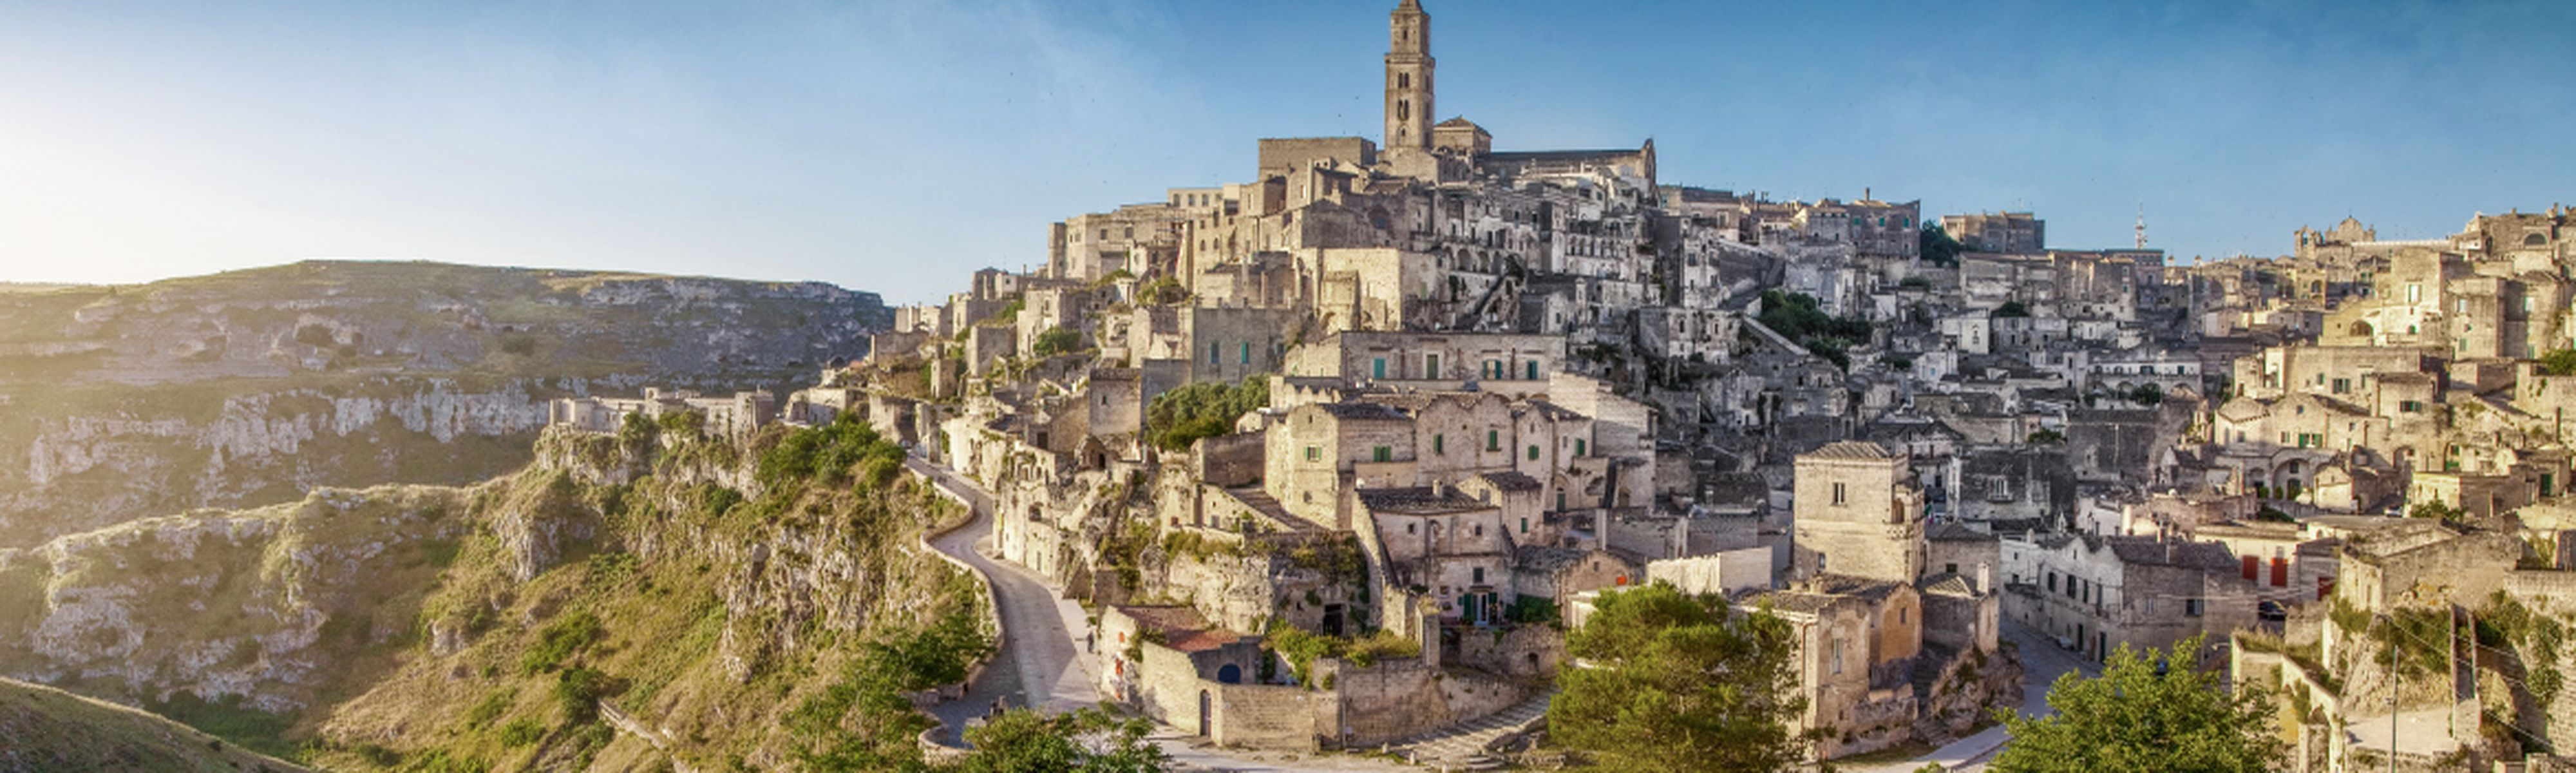 Hilltop of city in Matera, Italy